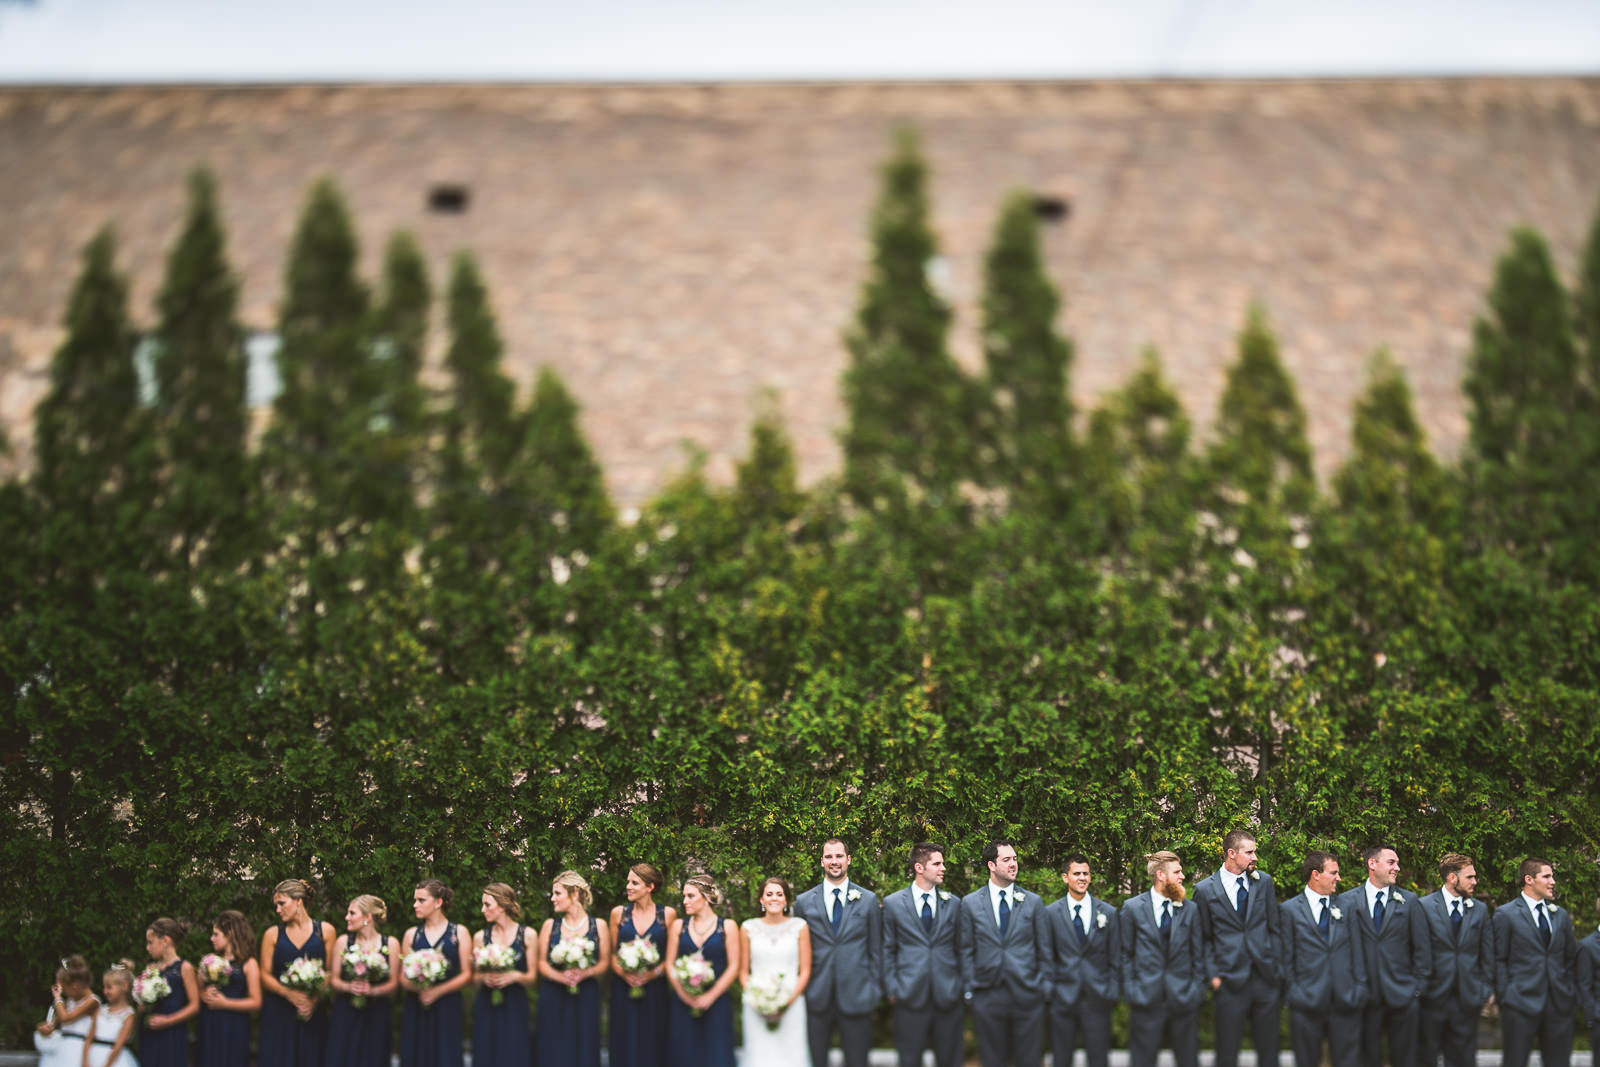 45 bridal party photos